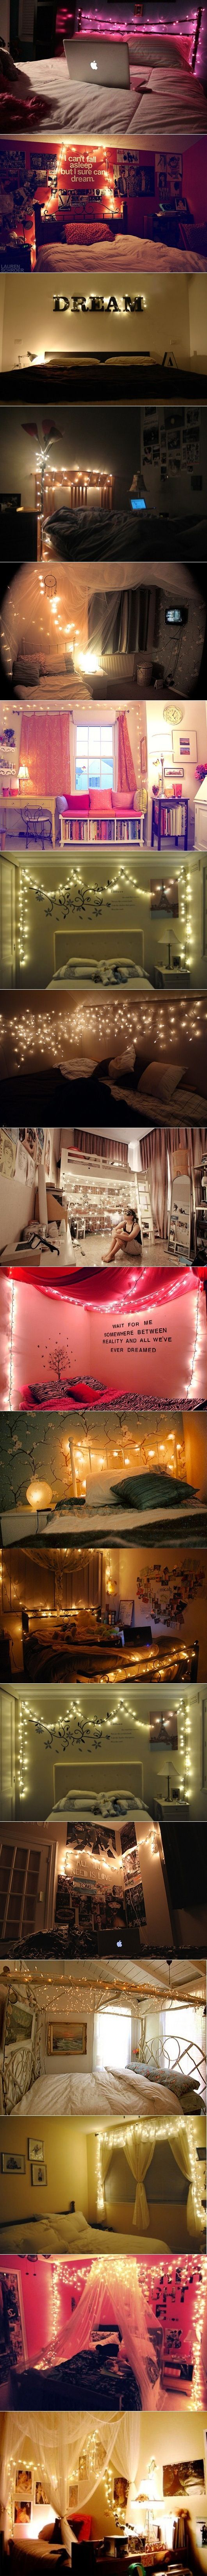 some of these are tacky, but what I like is when you go to bed or watching a movie, it is comfy and cozy. I also don't like that some are WAY too many lights.